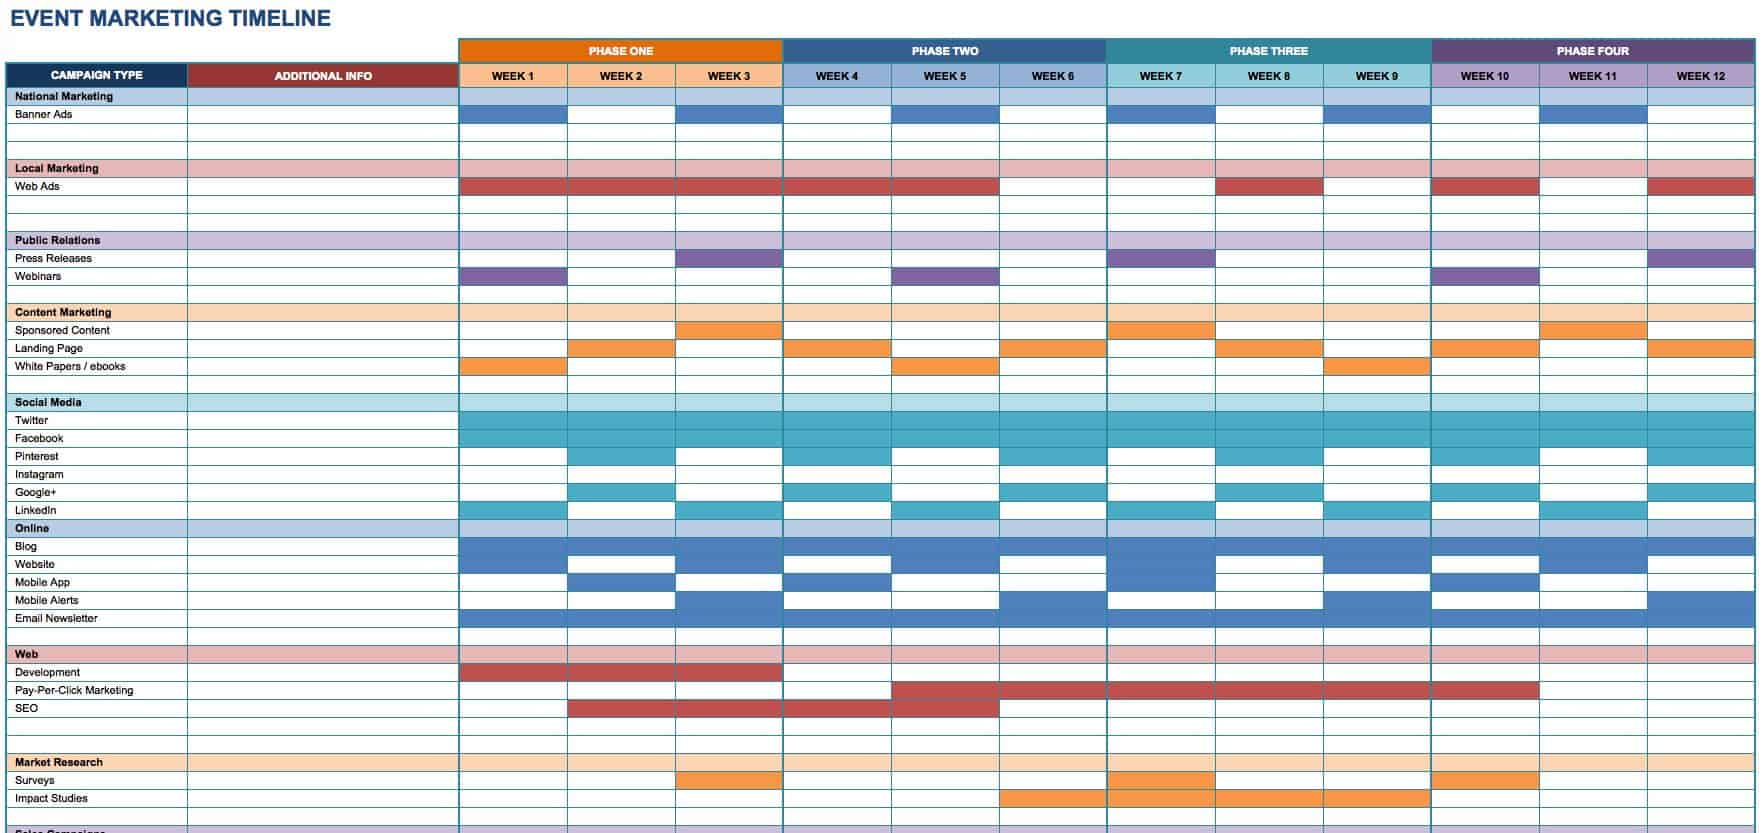 Calendar Organization Questionnaire : Free marketing timeline tips and templates smartsheet